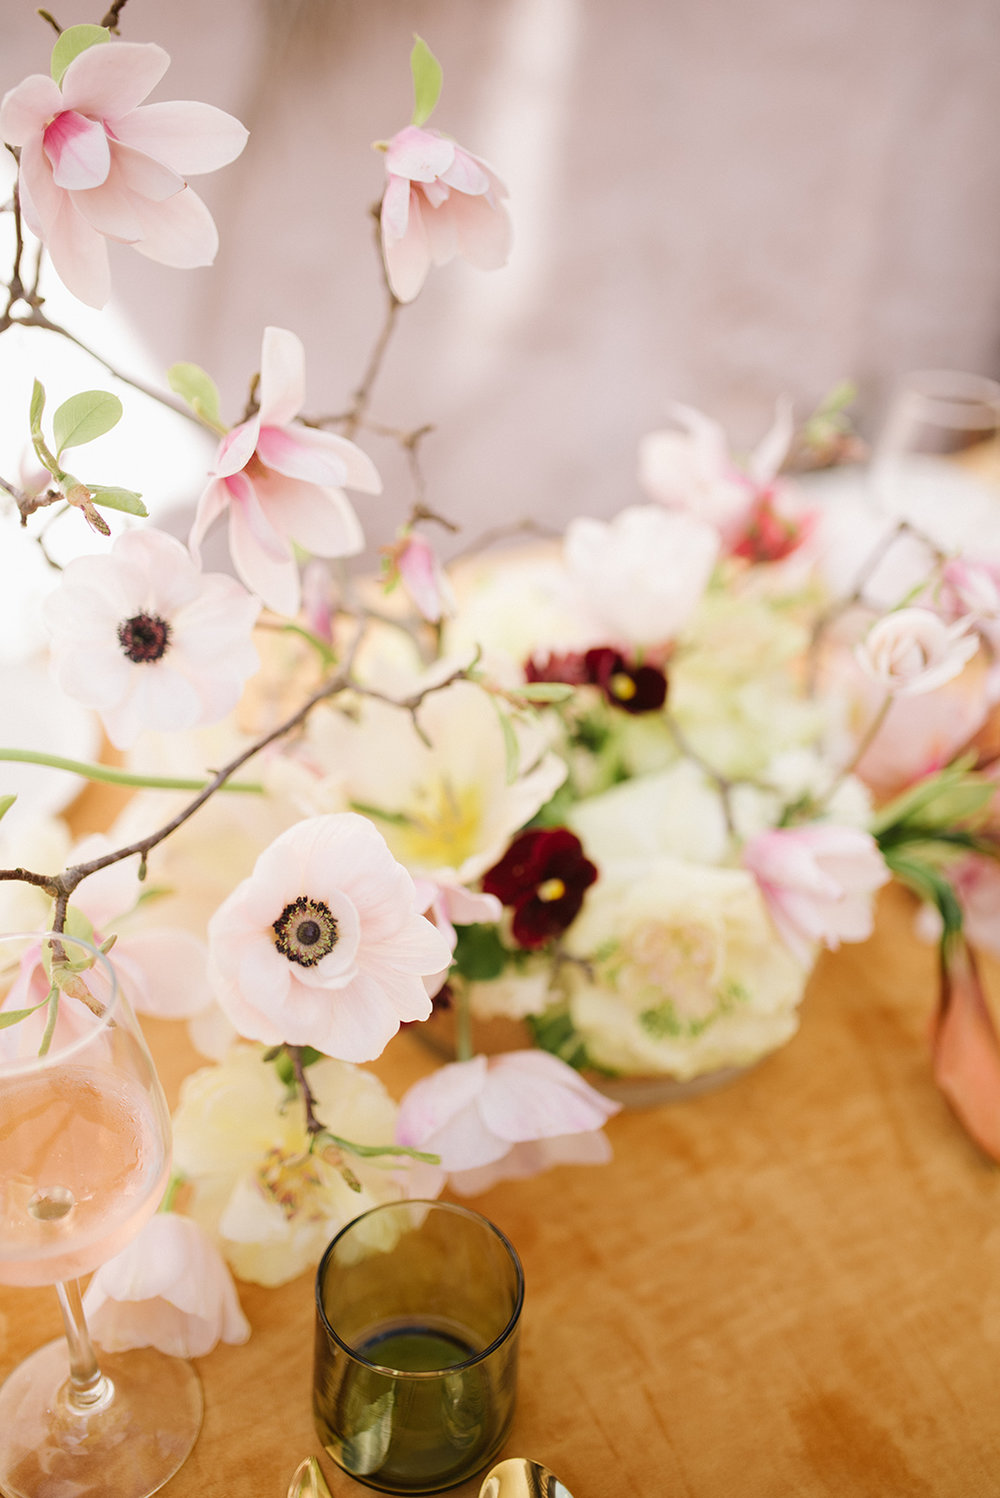 SPRING'S RECEPTION, Editorial with It's a Nice Day